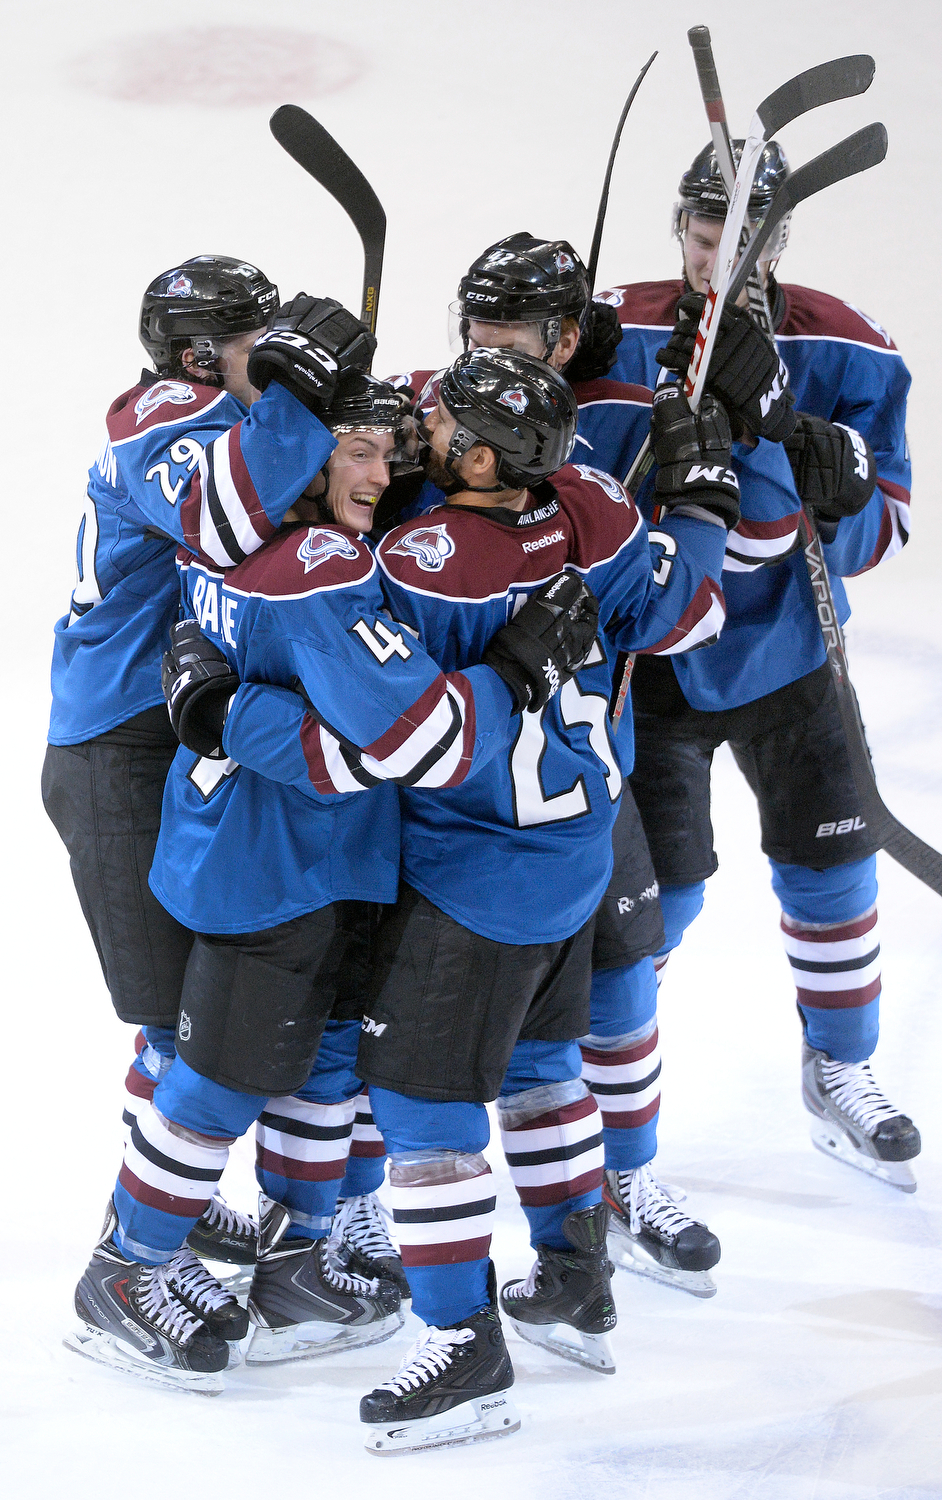 . Tyson Barrie (4) was mobbed by teammates after his game winning goal in overtime Thursday night.  The Colorado Avalanche defeated the Vancouver Canucks 3-2 in overtime Thursday night, March 27, 2014 at the Pepsi Center in Denver, Colorado. (Photo by Karl Gehring/The Denver Post)